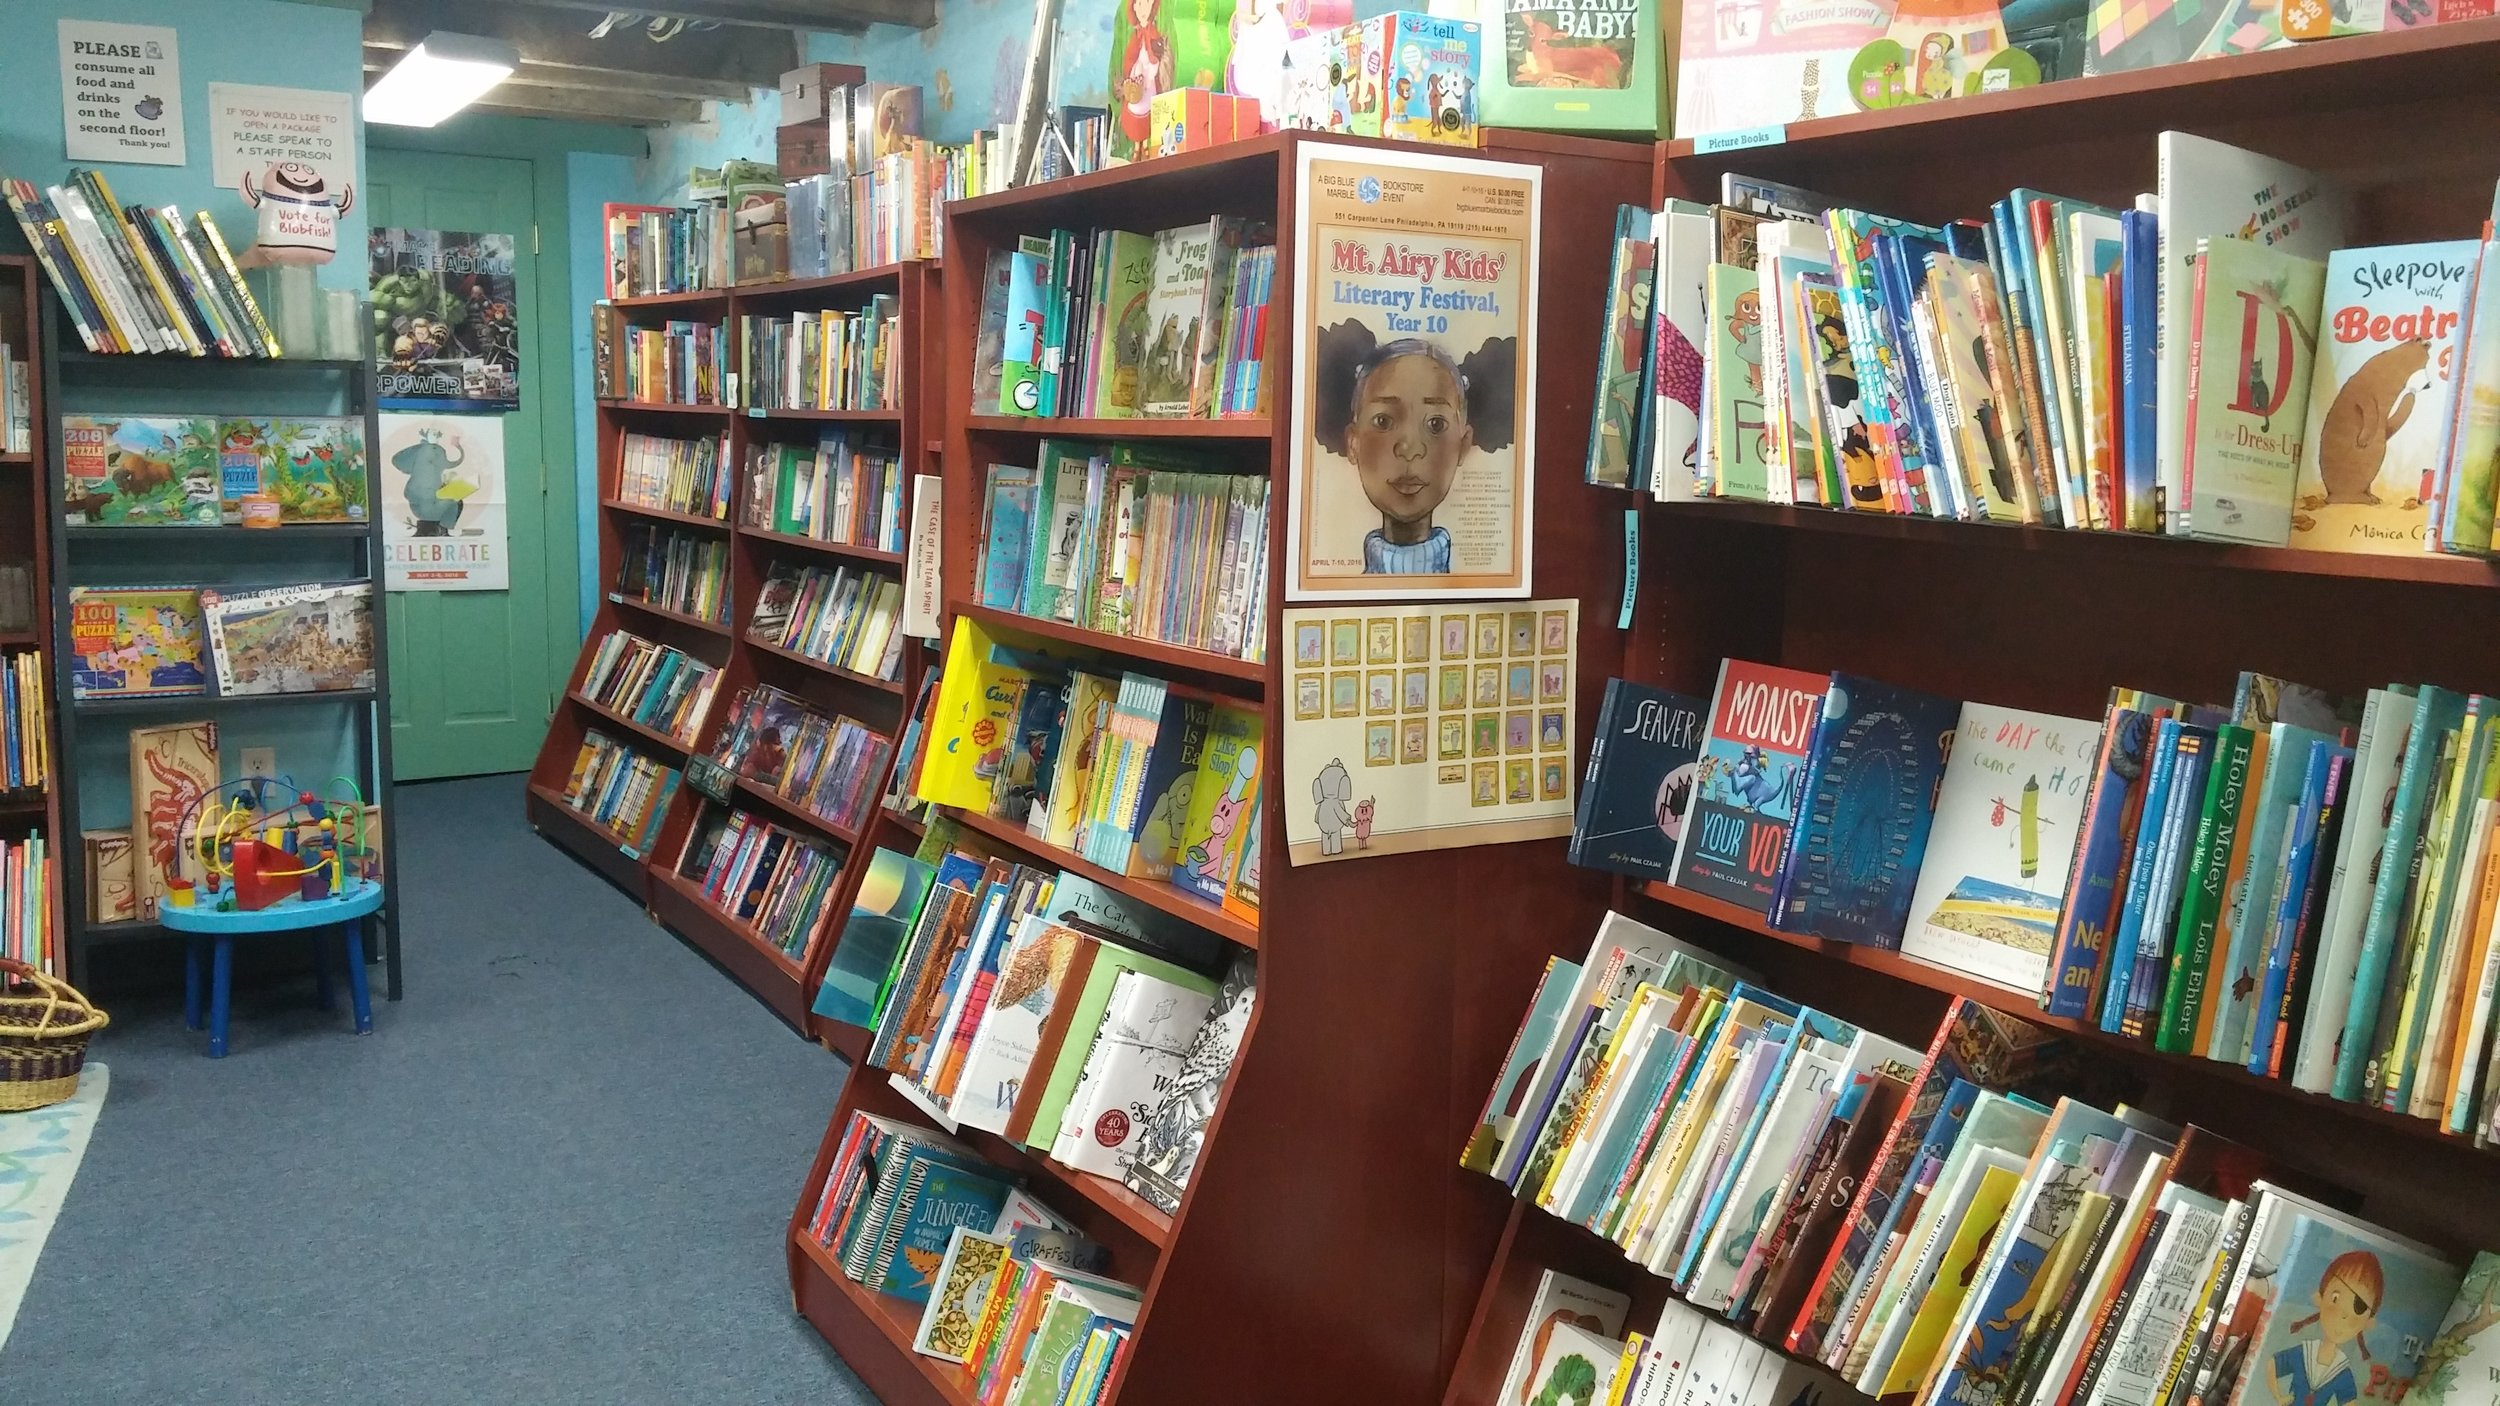 kids area chapter books and picture books.jpg